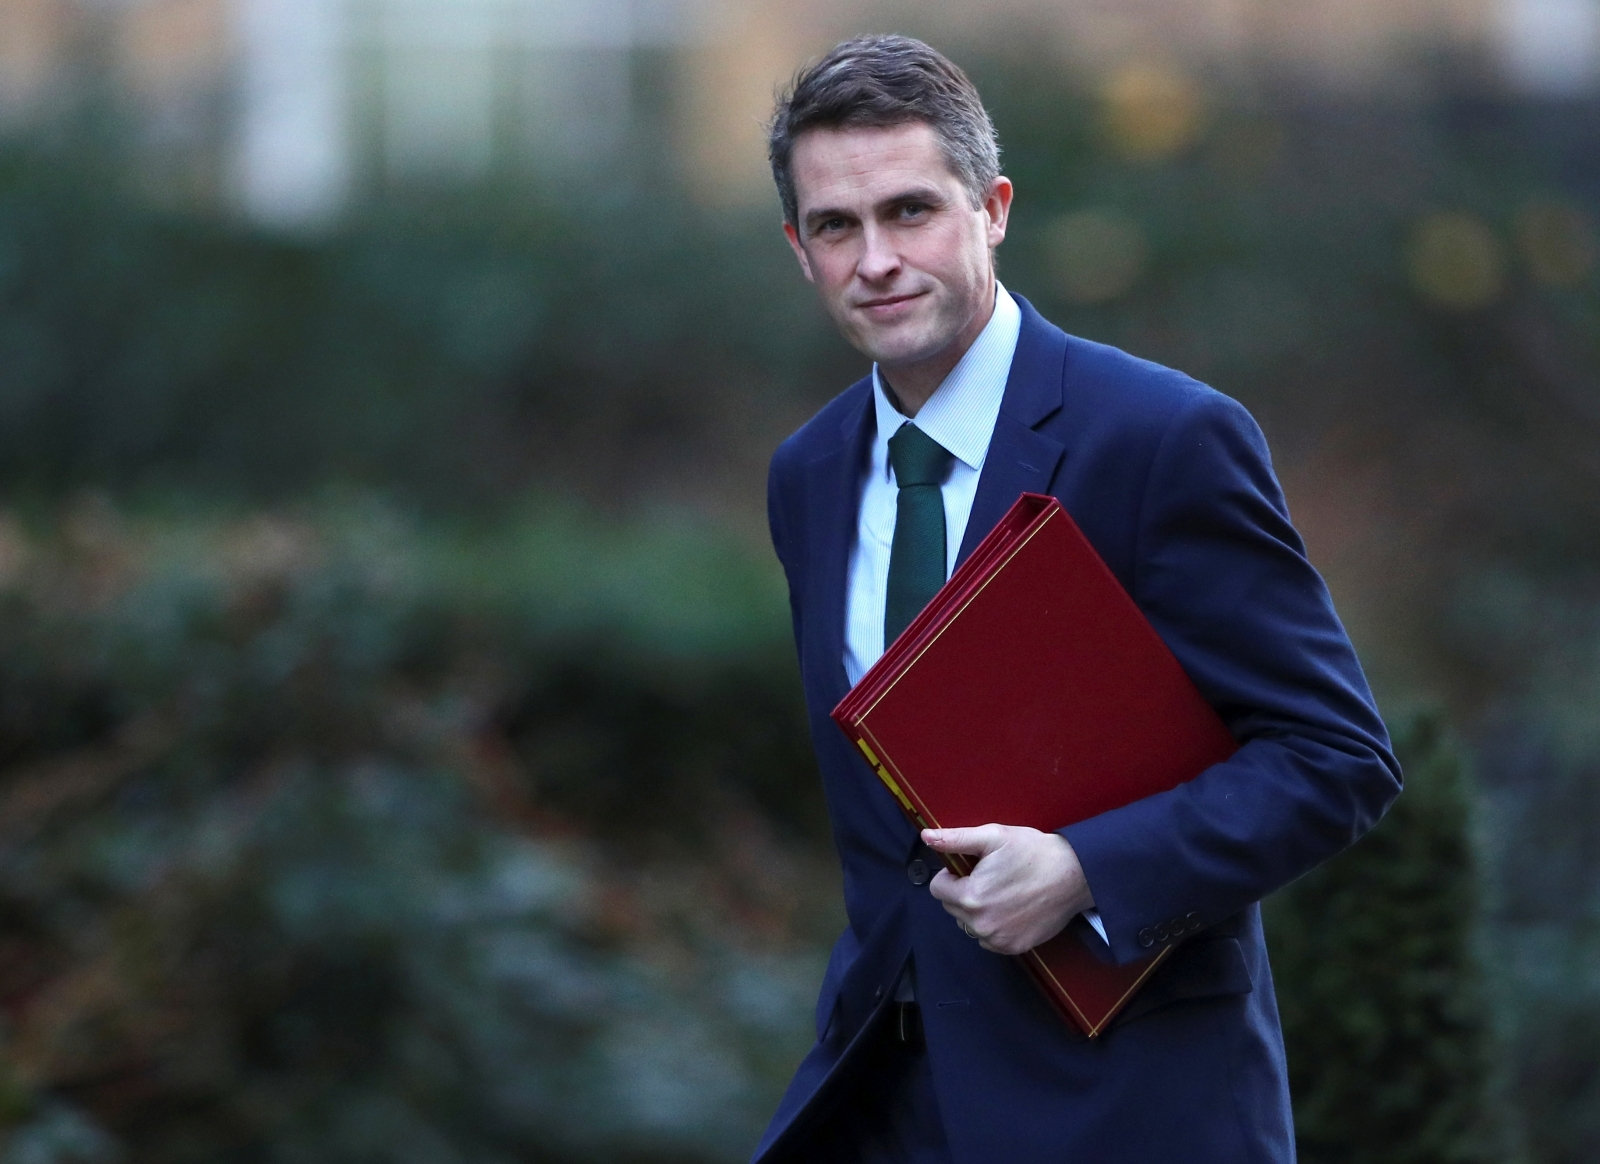 Russian Federation  threat to UK's energy supply could kill 'thousands' says defence secretary